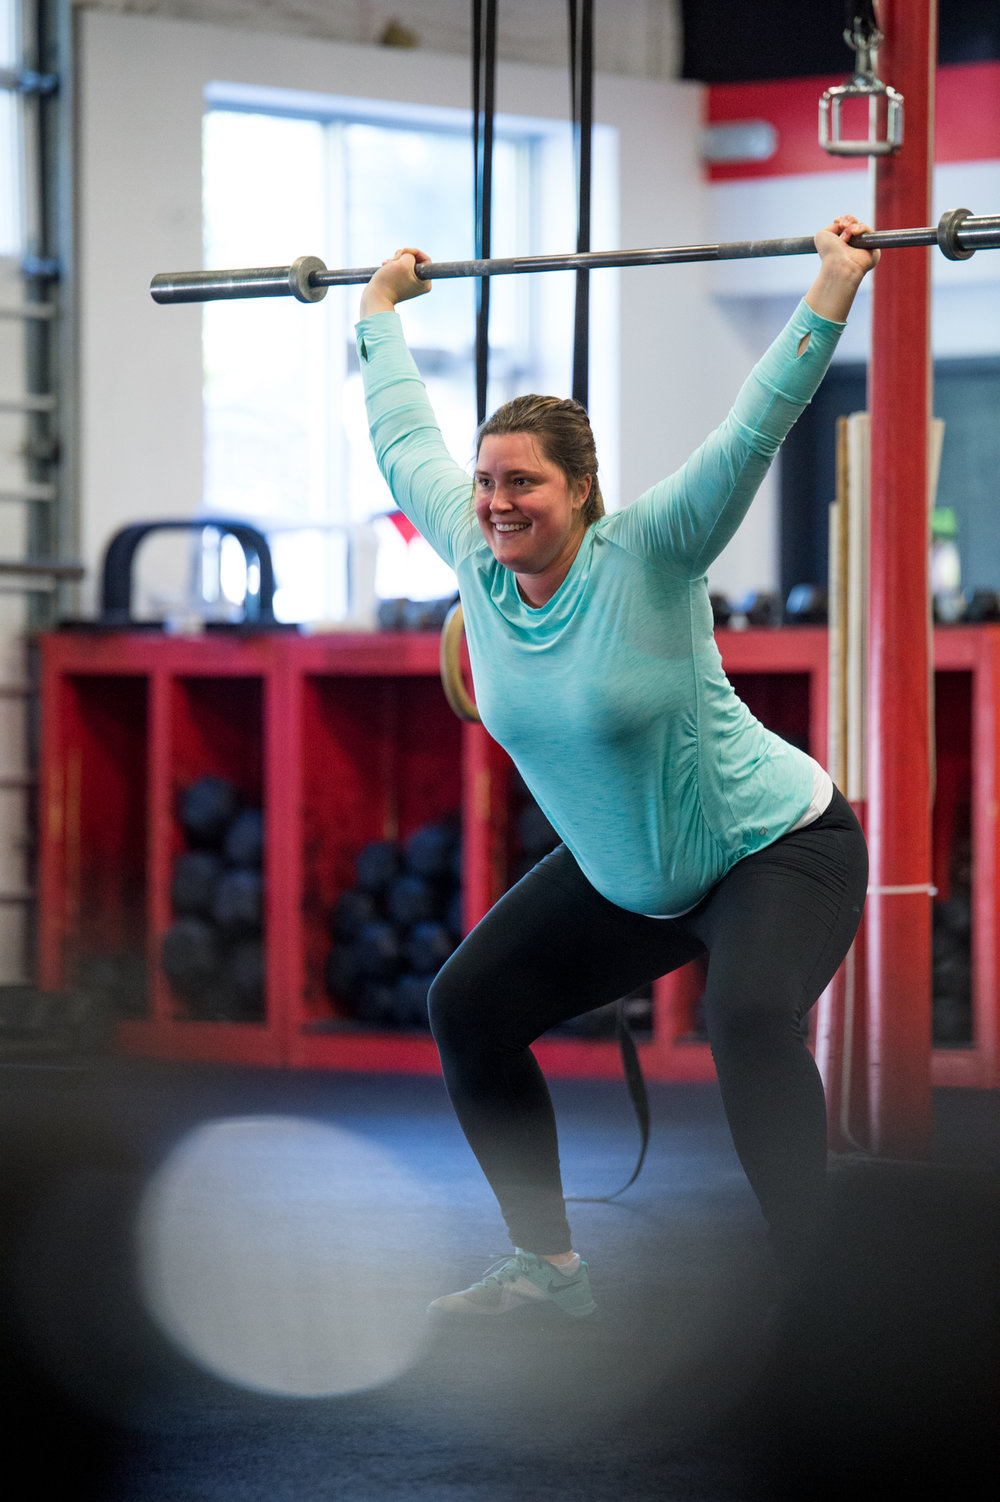 Jenna shows us how fun overhead squats are. Have you tried the Overhead Squat Challenge yet?